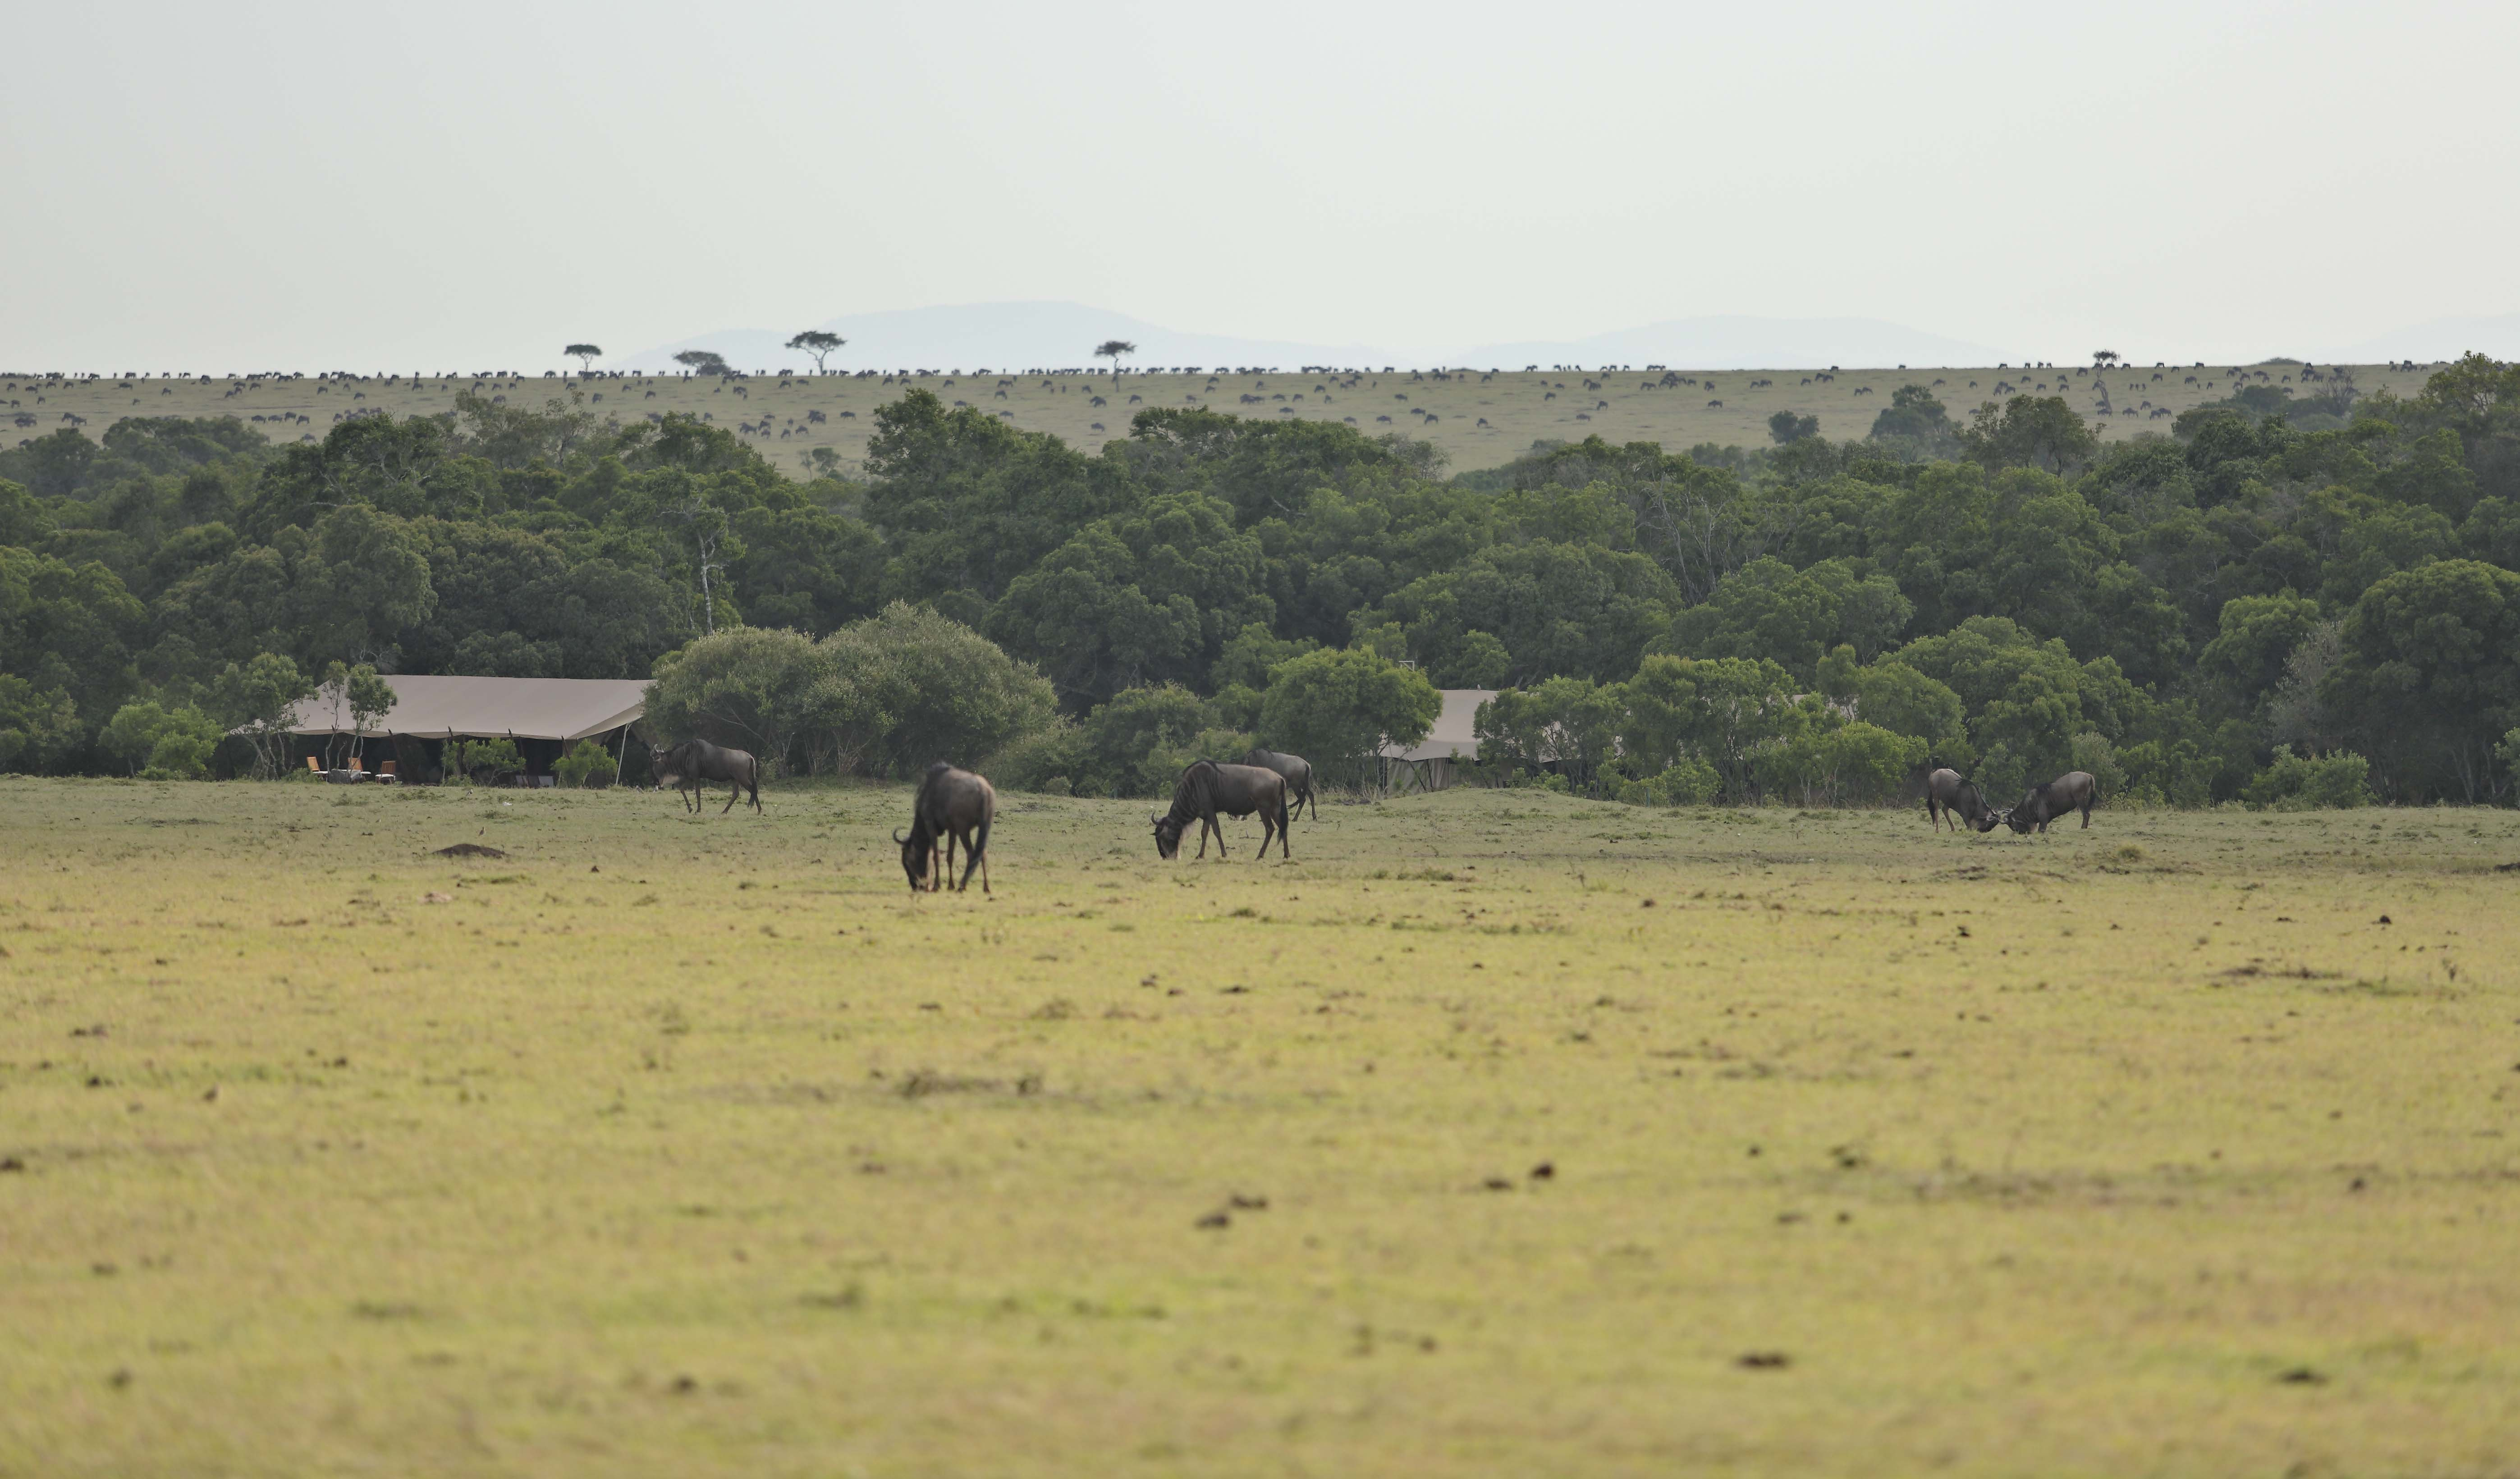 Saruni Wild - In the thick of the wildlife